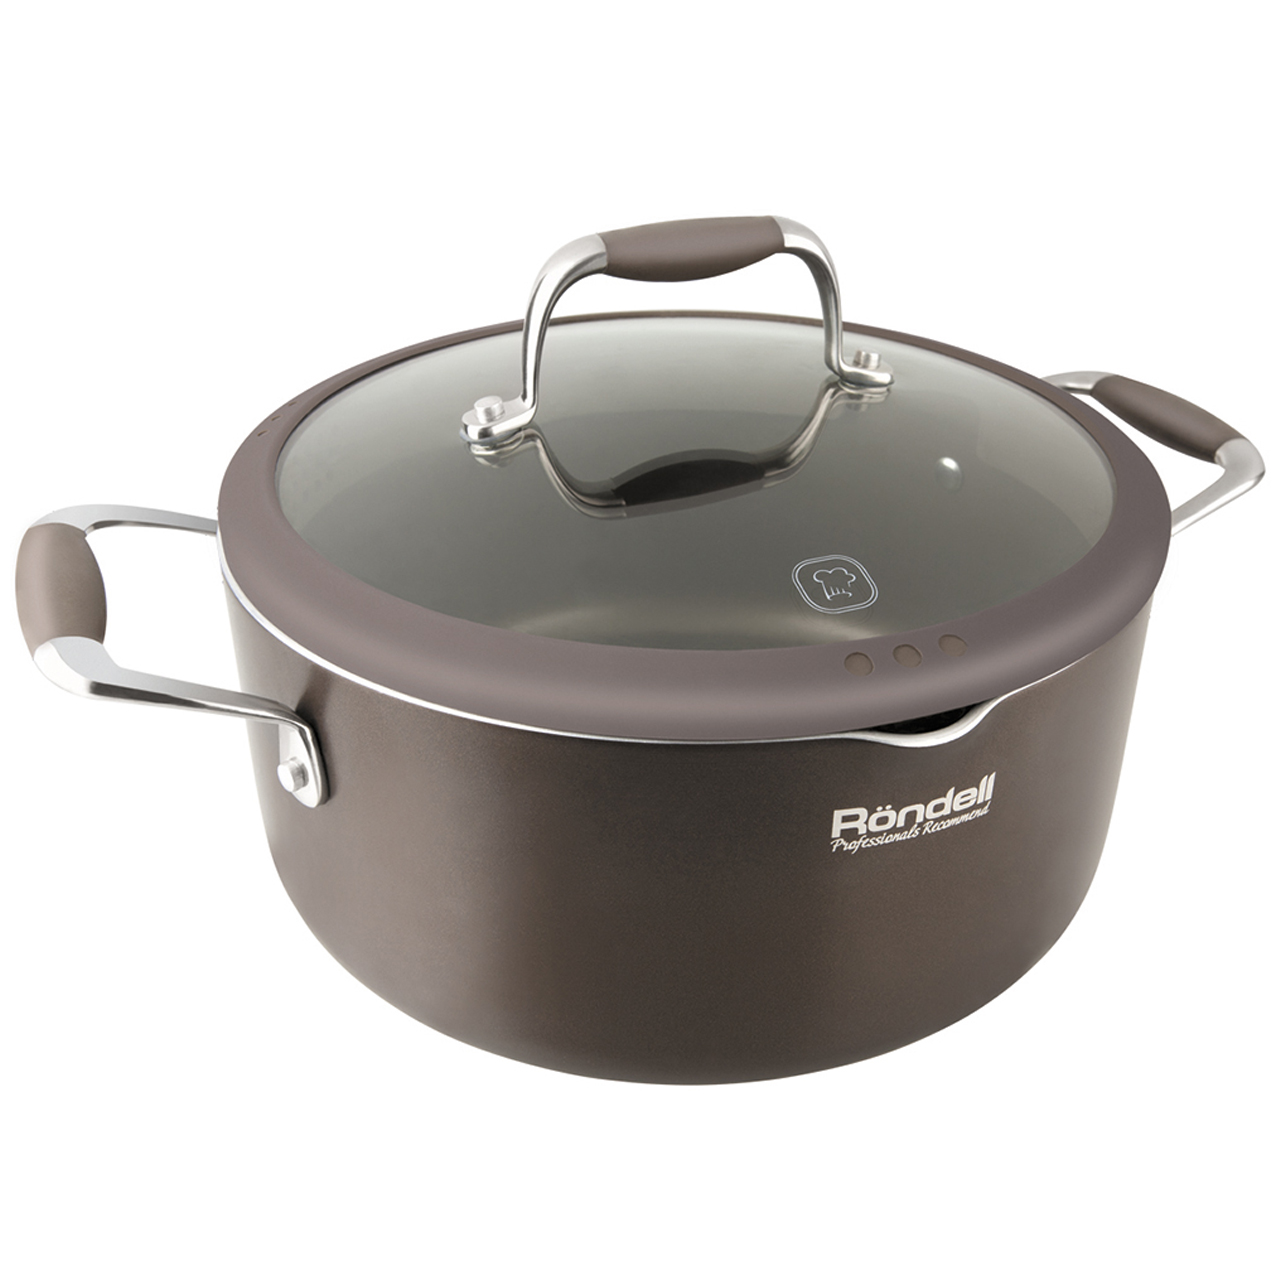 Pot with lid Rondell Mocco 24 cm (3,5 l) RDA-281